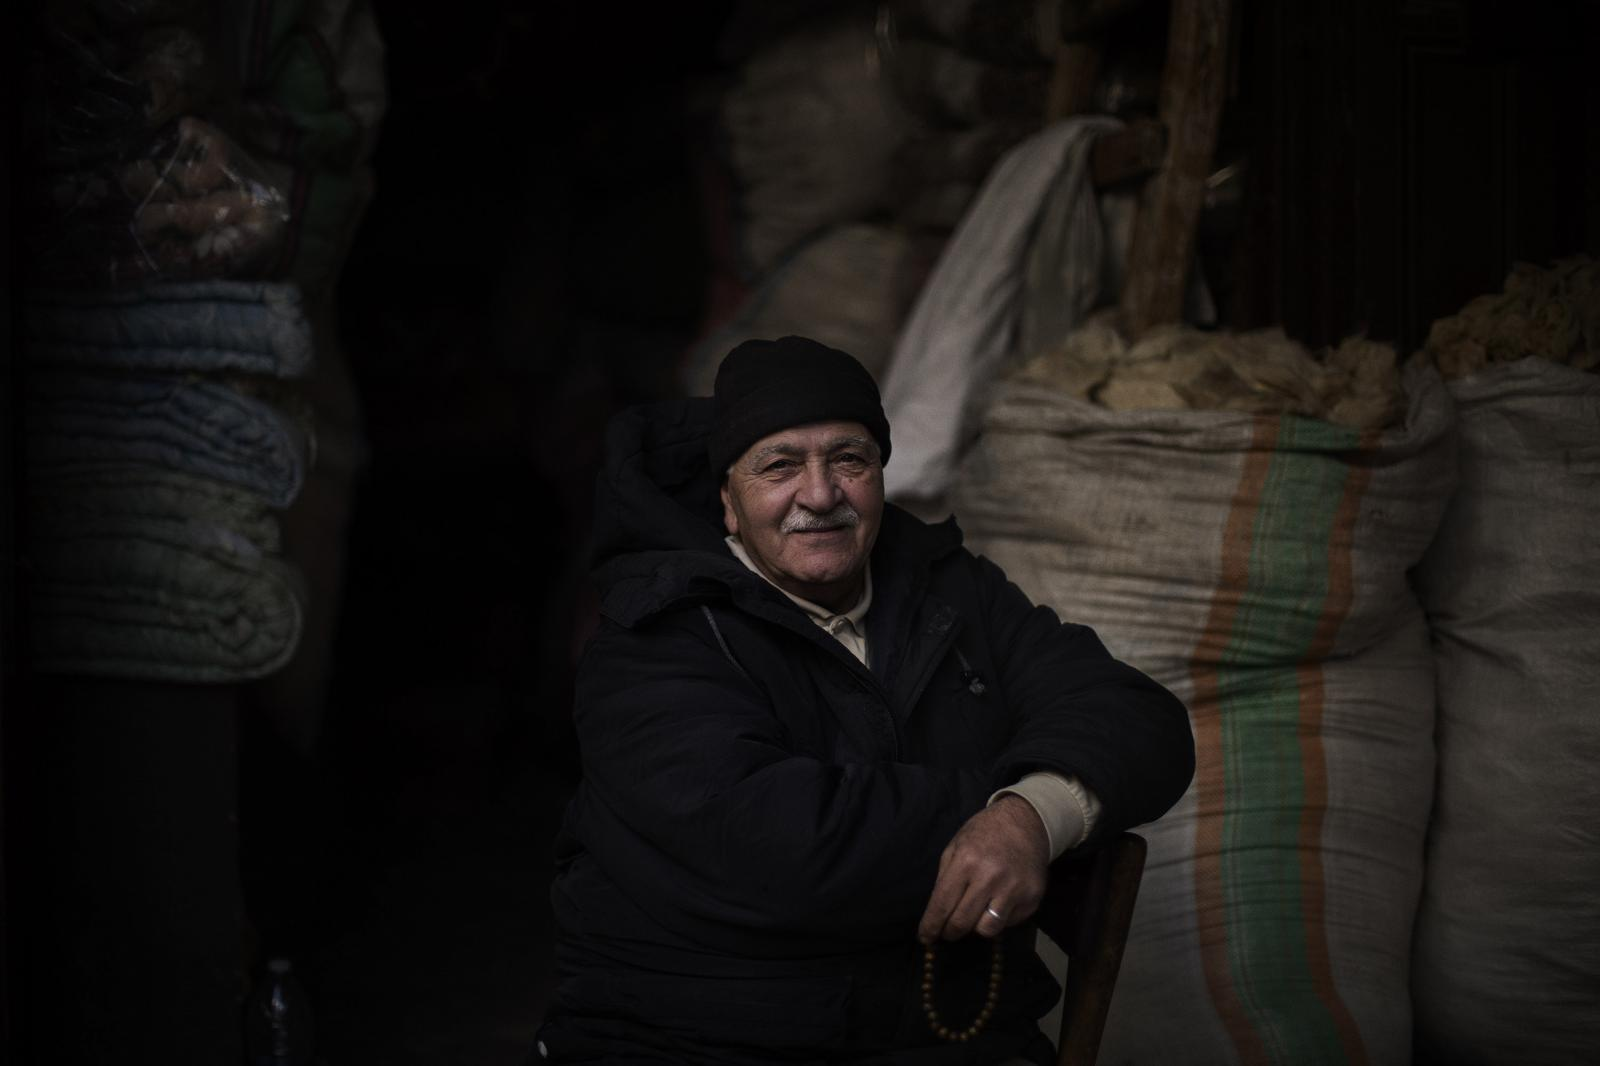 """Lababidi abu Issam: """"I have no income. We rely on god. The situation isn't going to get better. My business is dead. They see us as artisans/heritage. Still we live. We're able to teach our kids, we've let them get to nice positions. People survive here because they help each other"""" Tripoli. Lebanon. December 11th, 2019. Diego Ibarra Sánchez for CNN"""